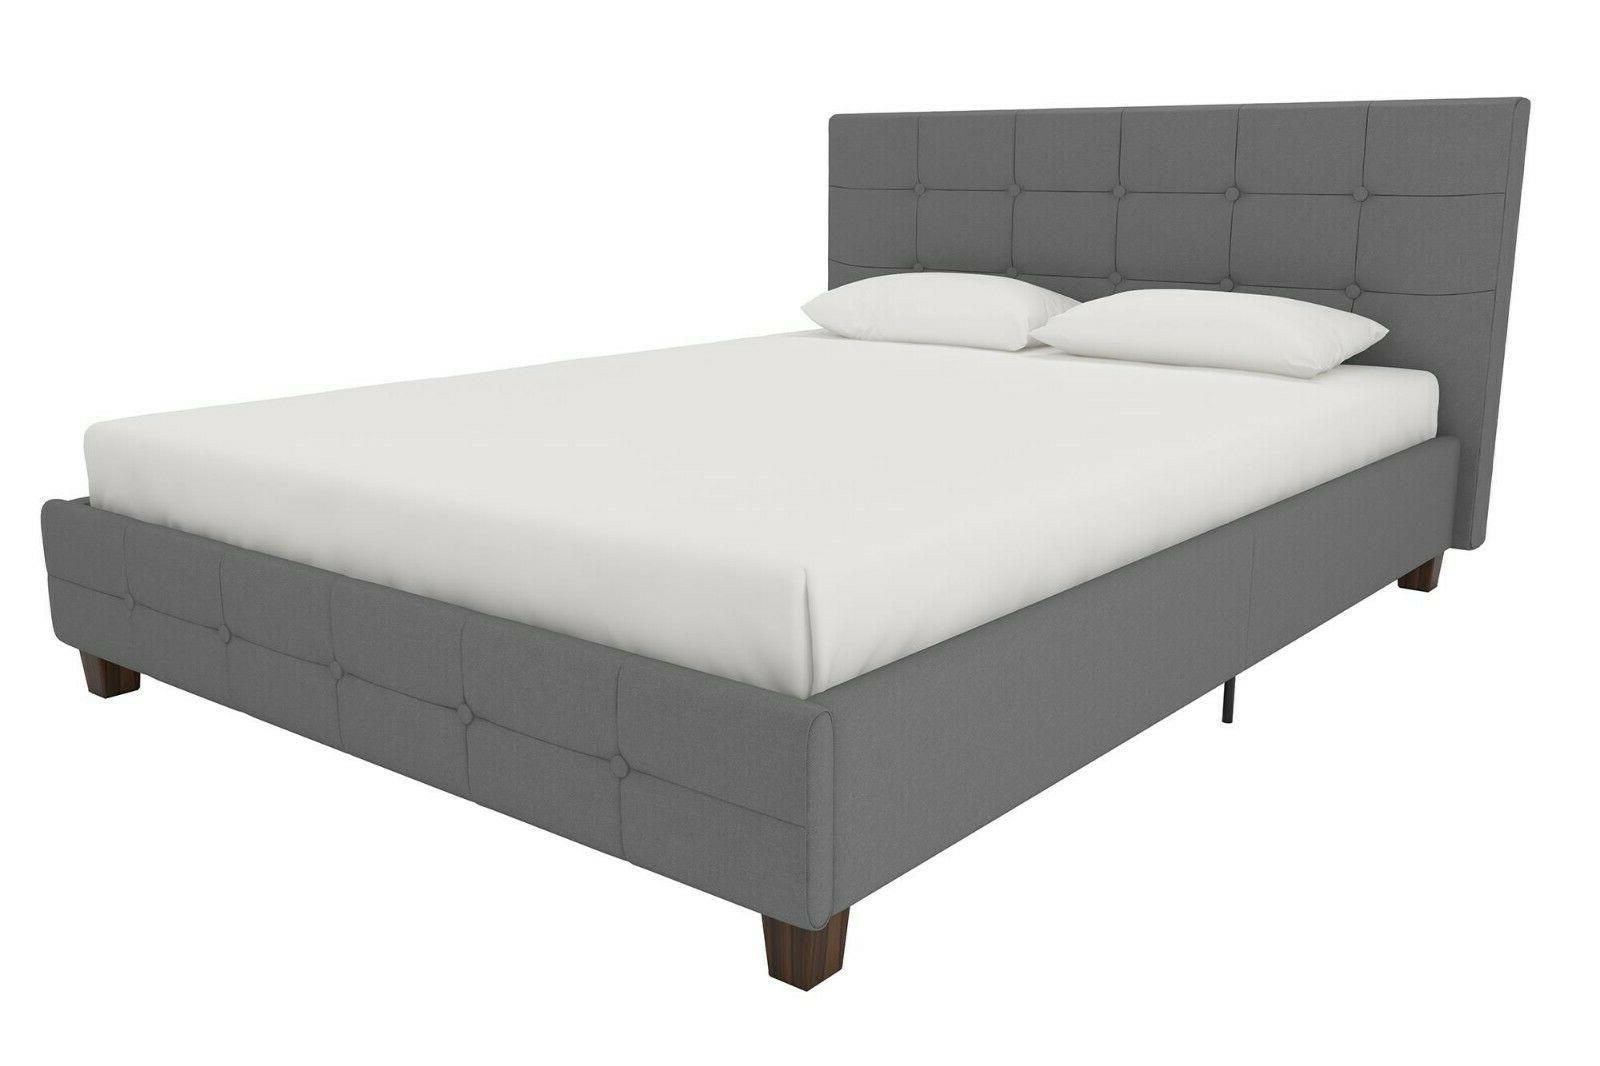 Linen Bed, Tufted Headboard and